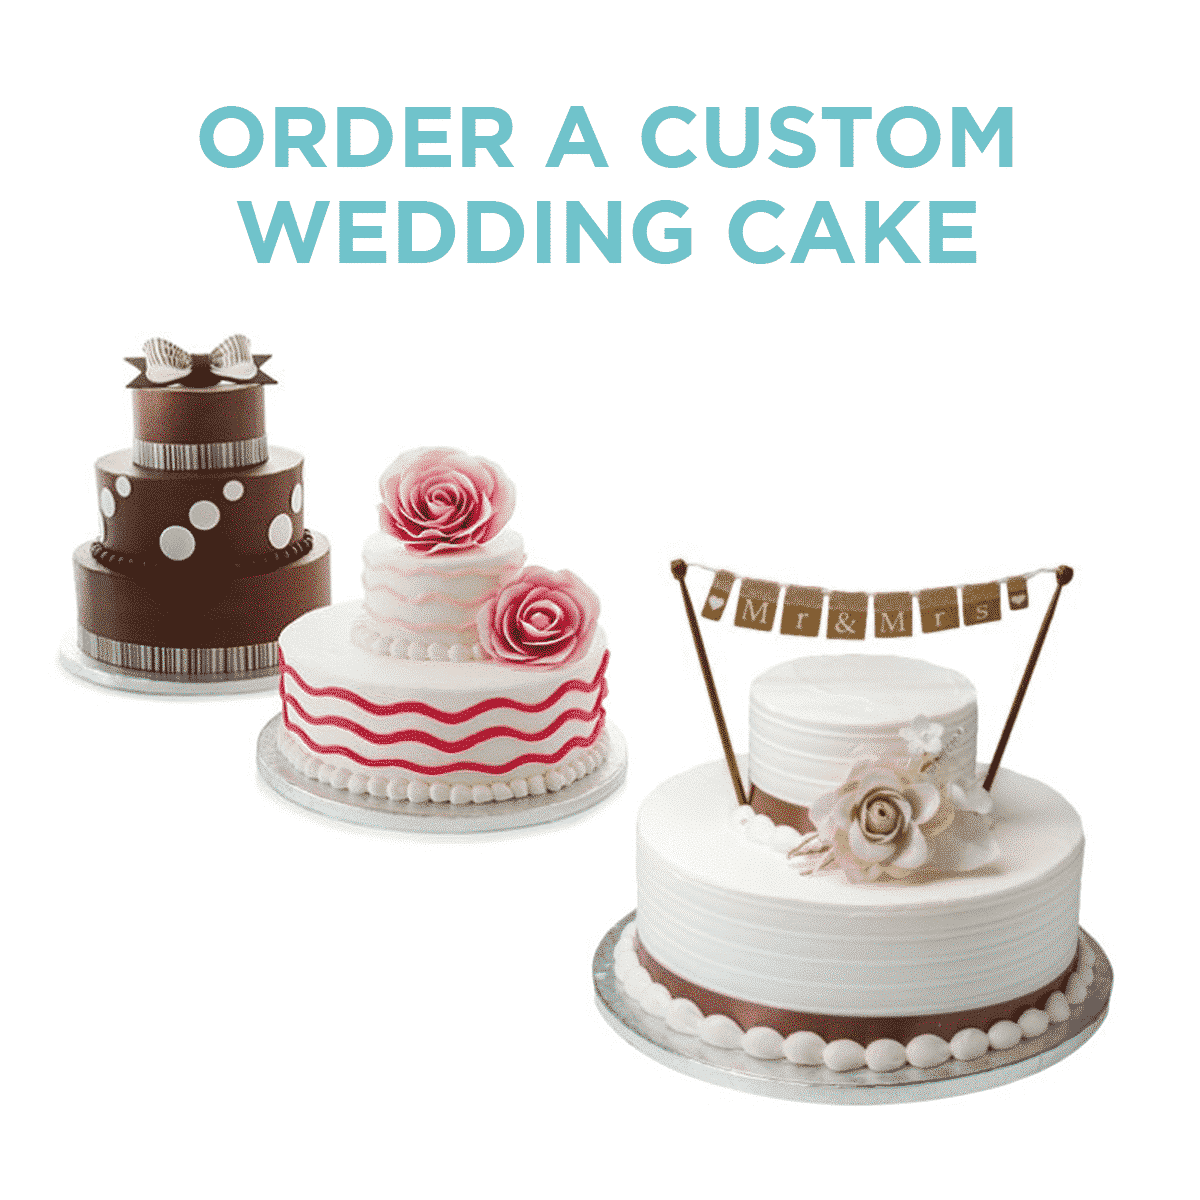 Order A Custom Wedding Cake At Samu0027s Club!